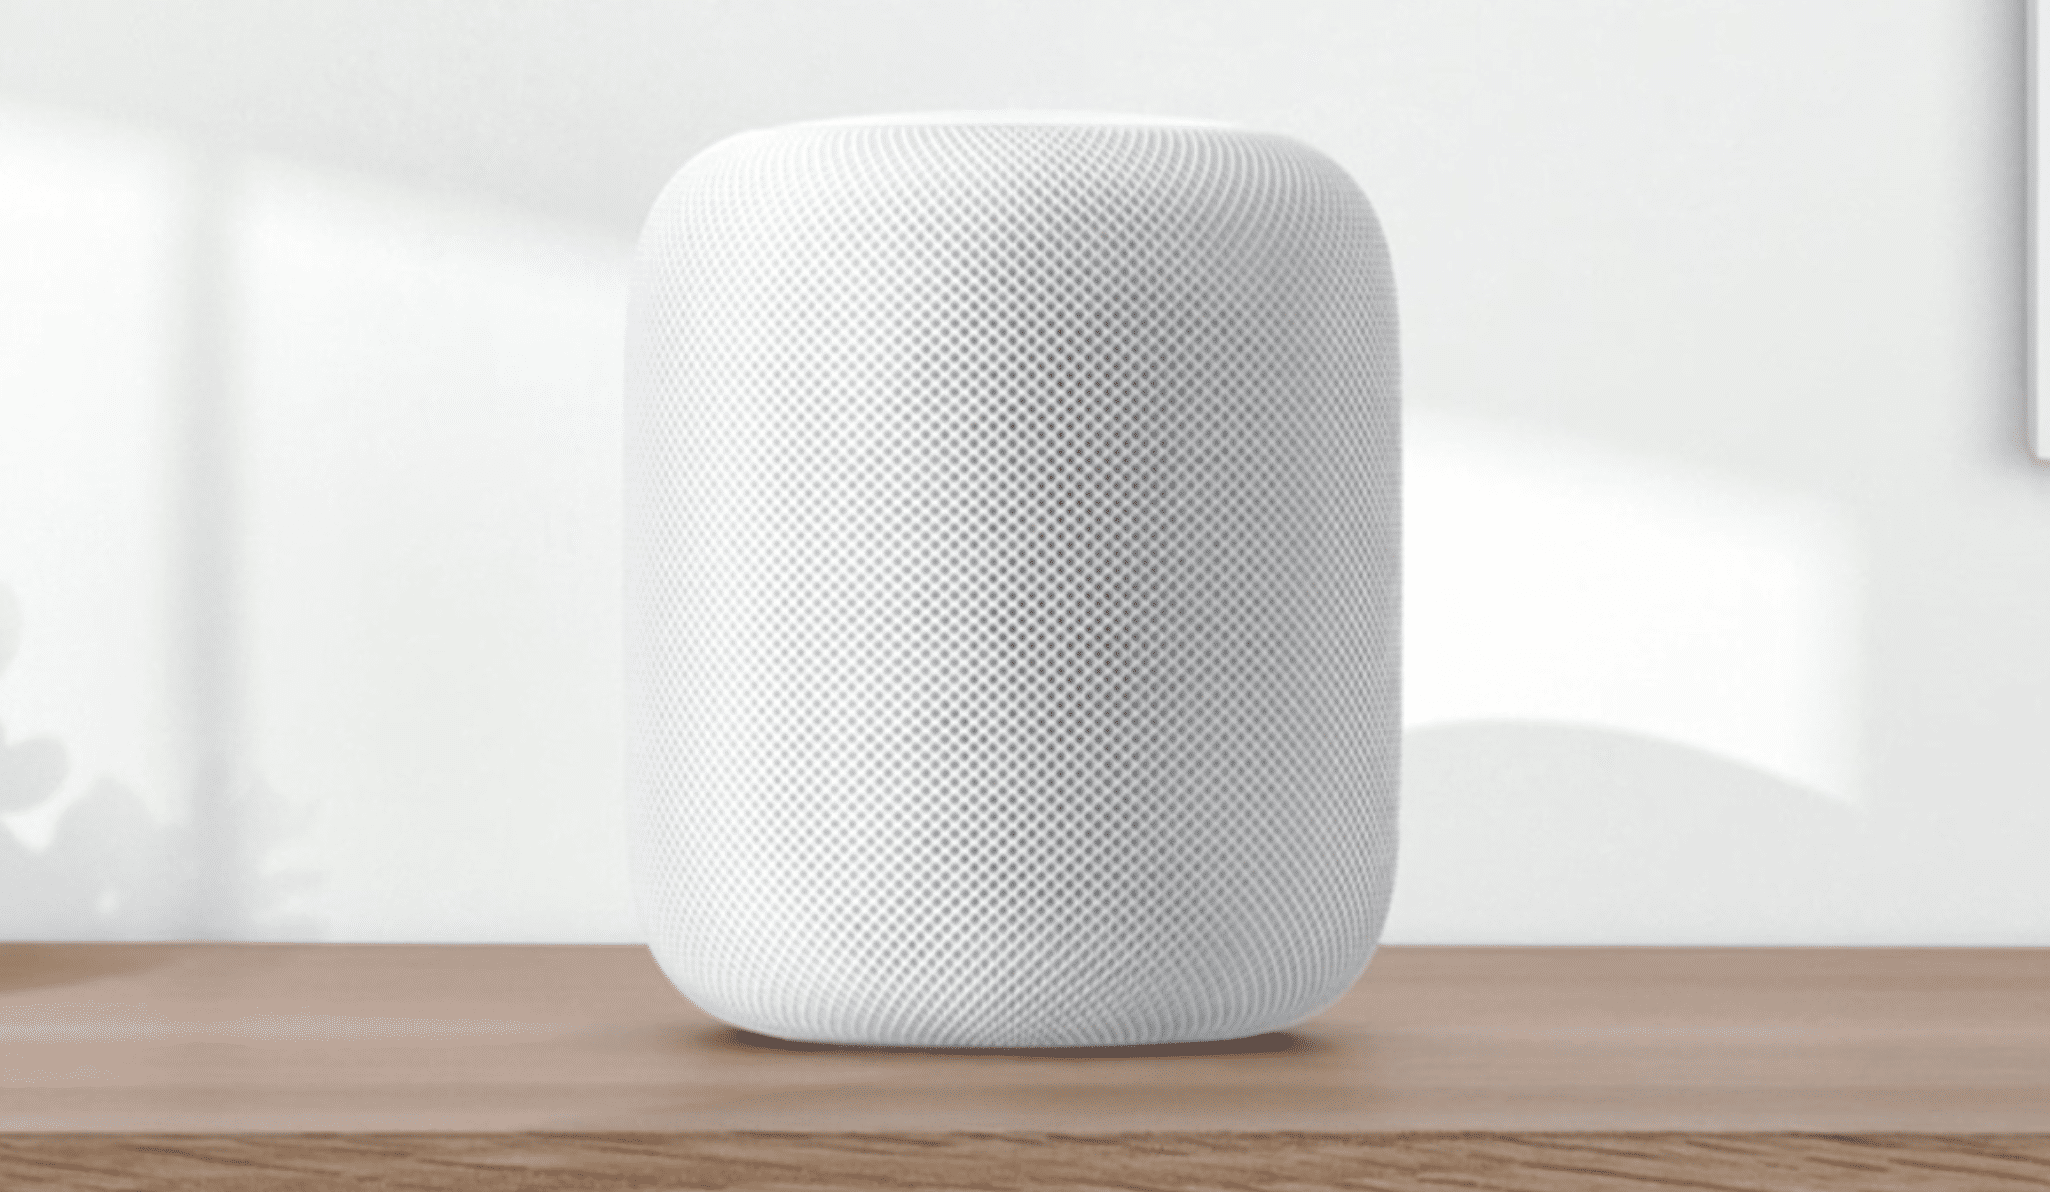 HomePod's sales are lacklustre according to rumours.png